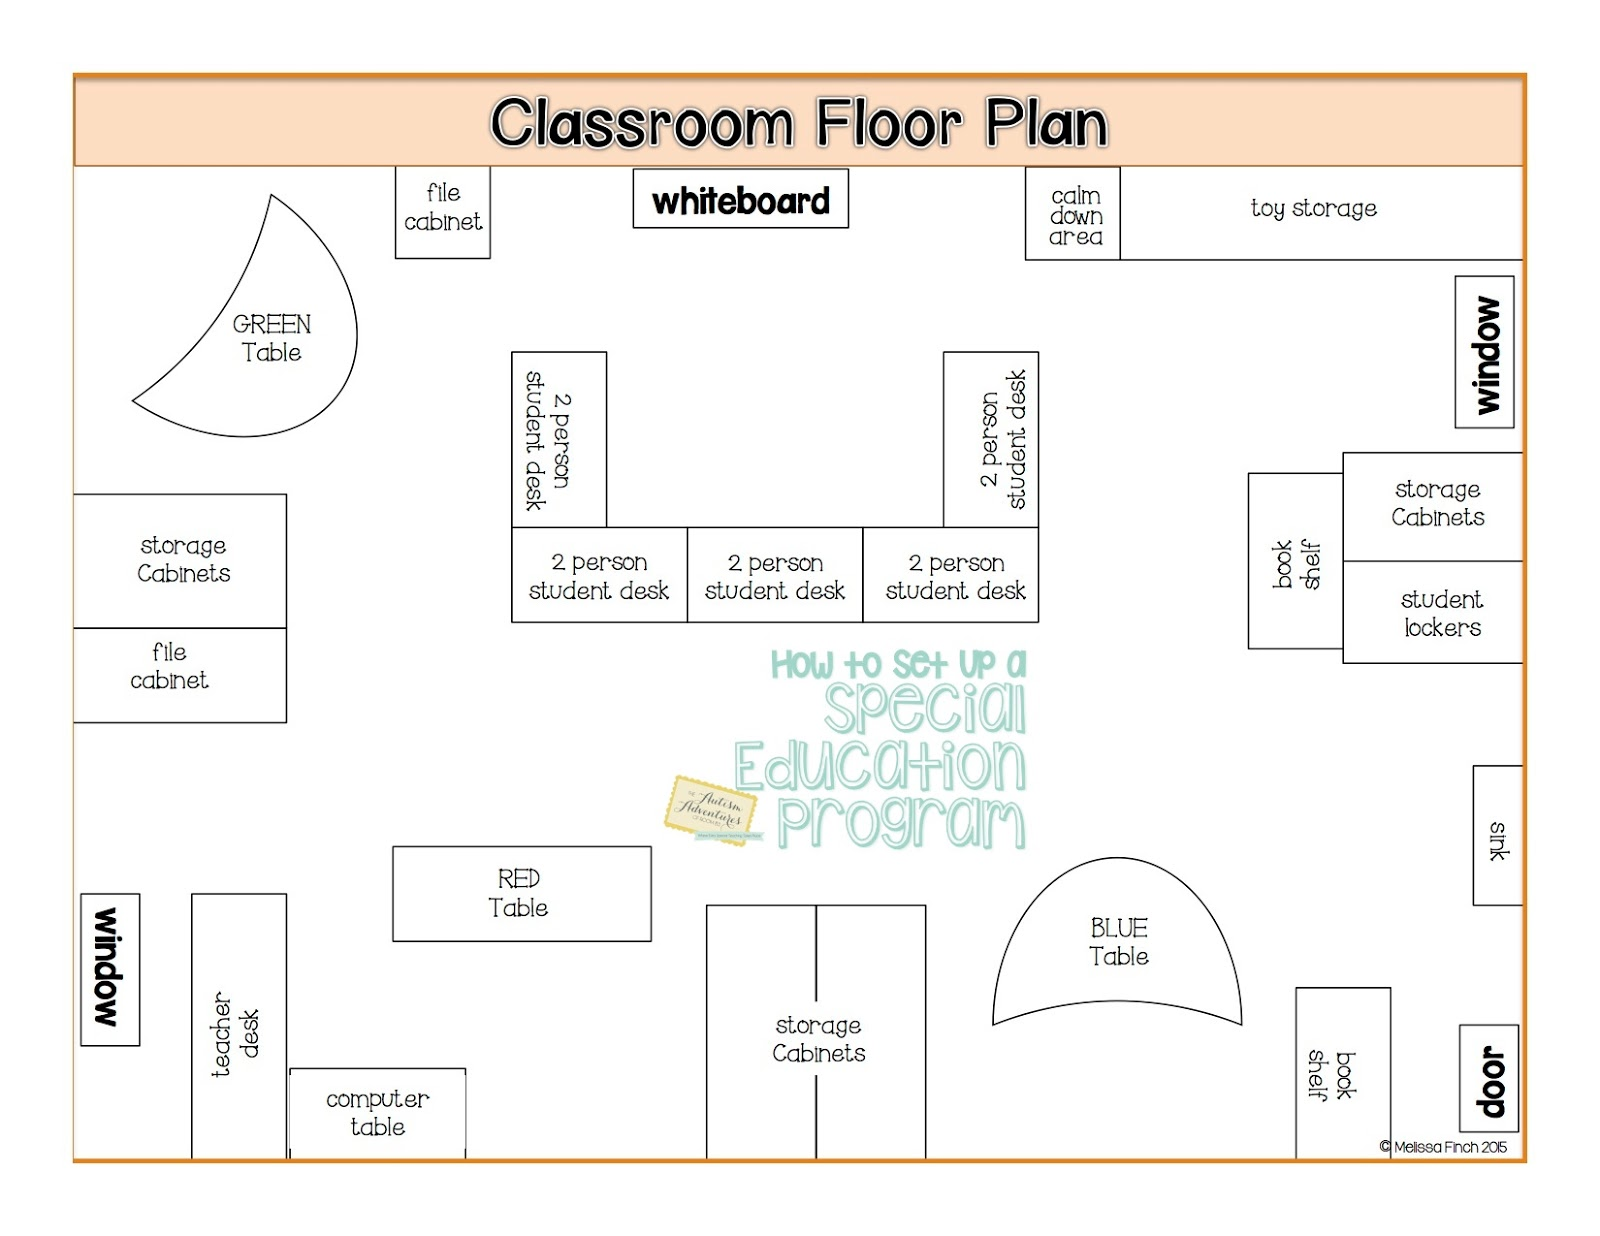 How to set up a special education program floor plans for Floor plan layout